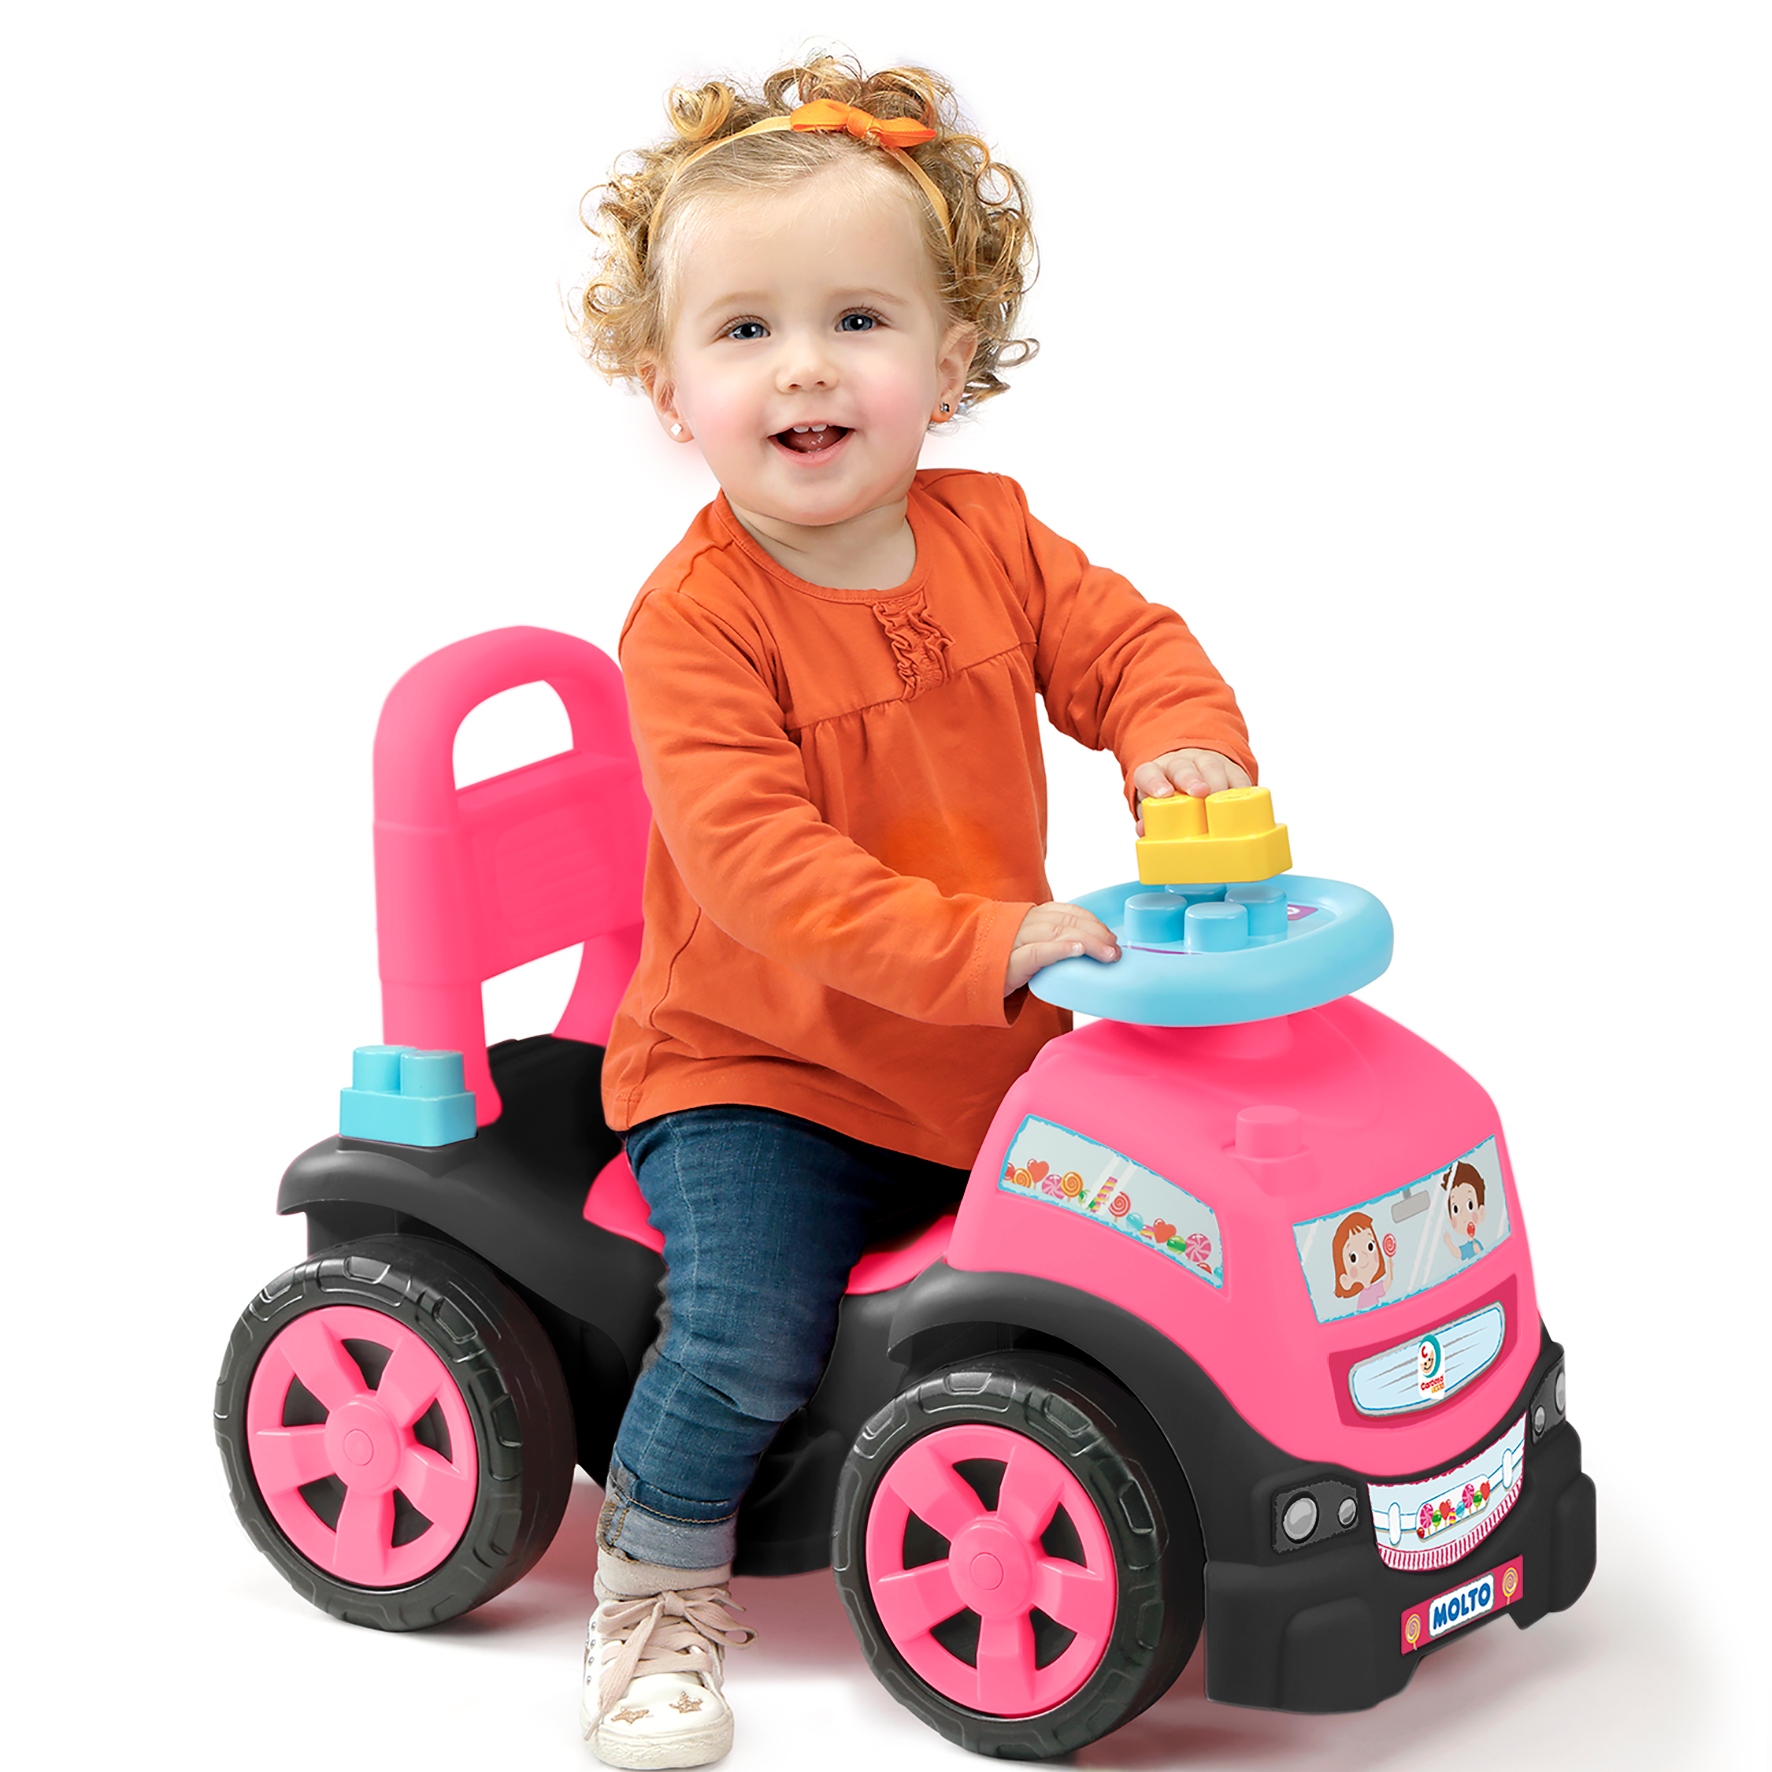 REF.-8013-Baby-Land-Blocks-Truck-Ride-On-menina—menina-montada